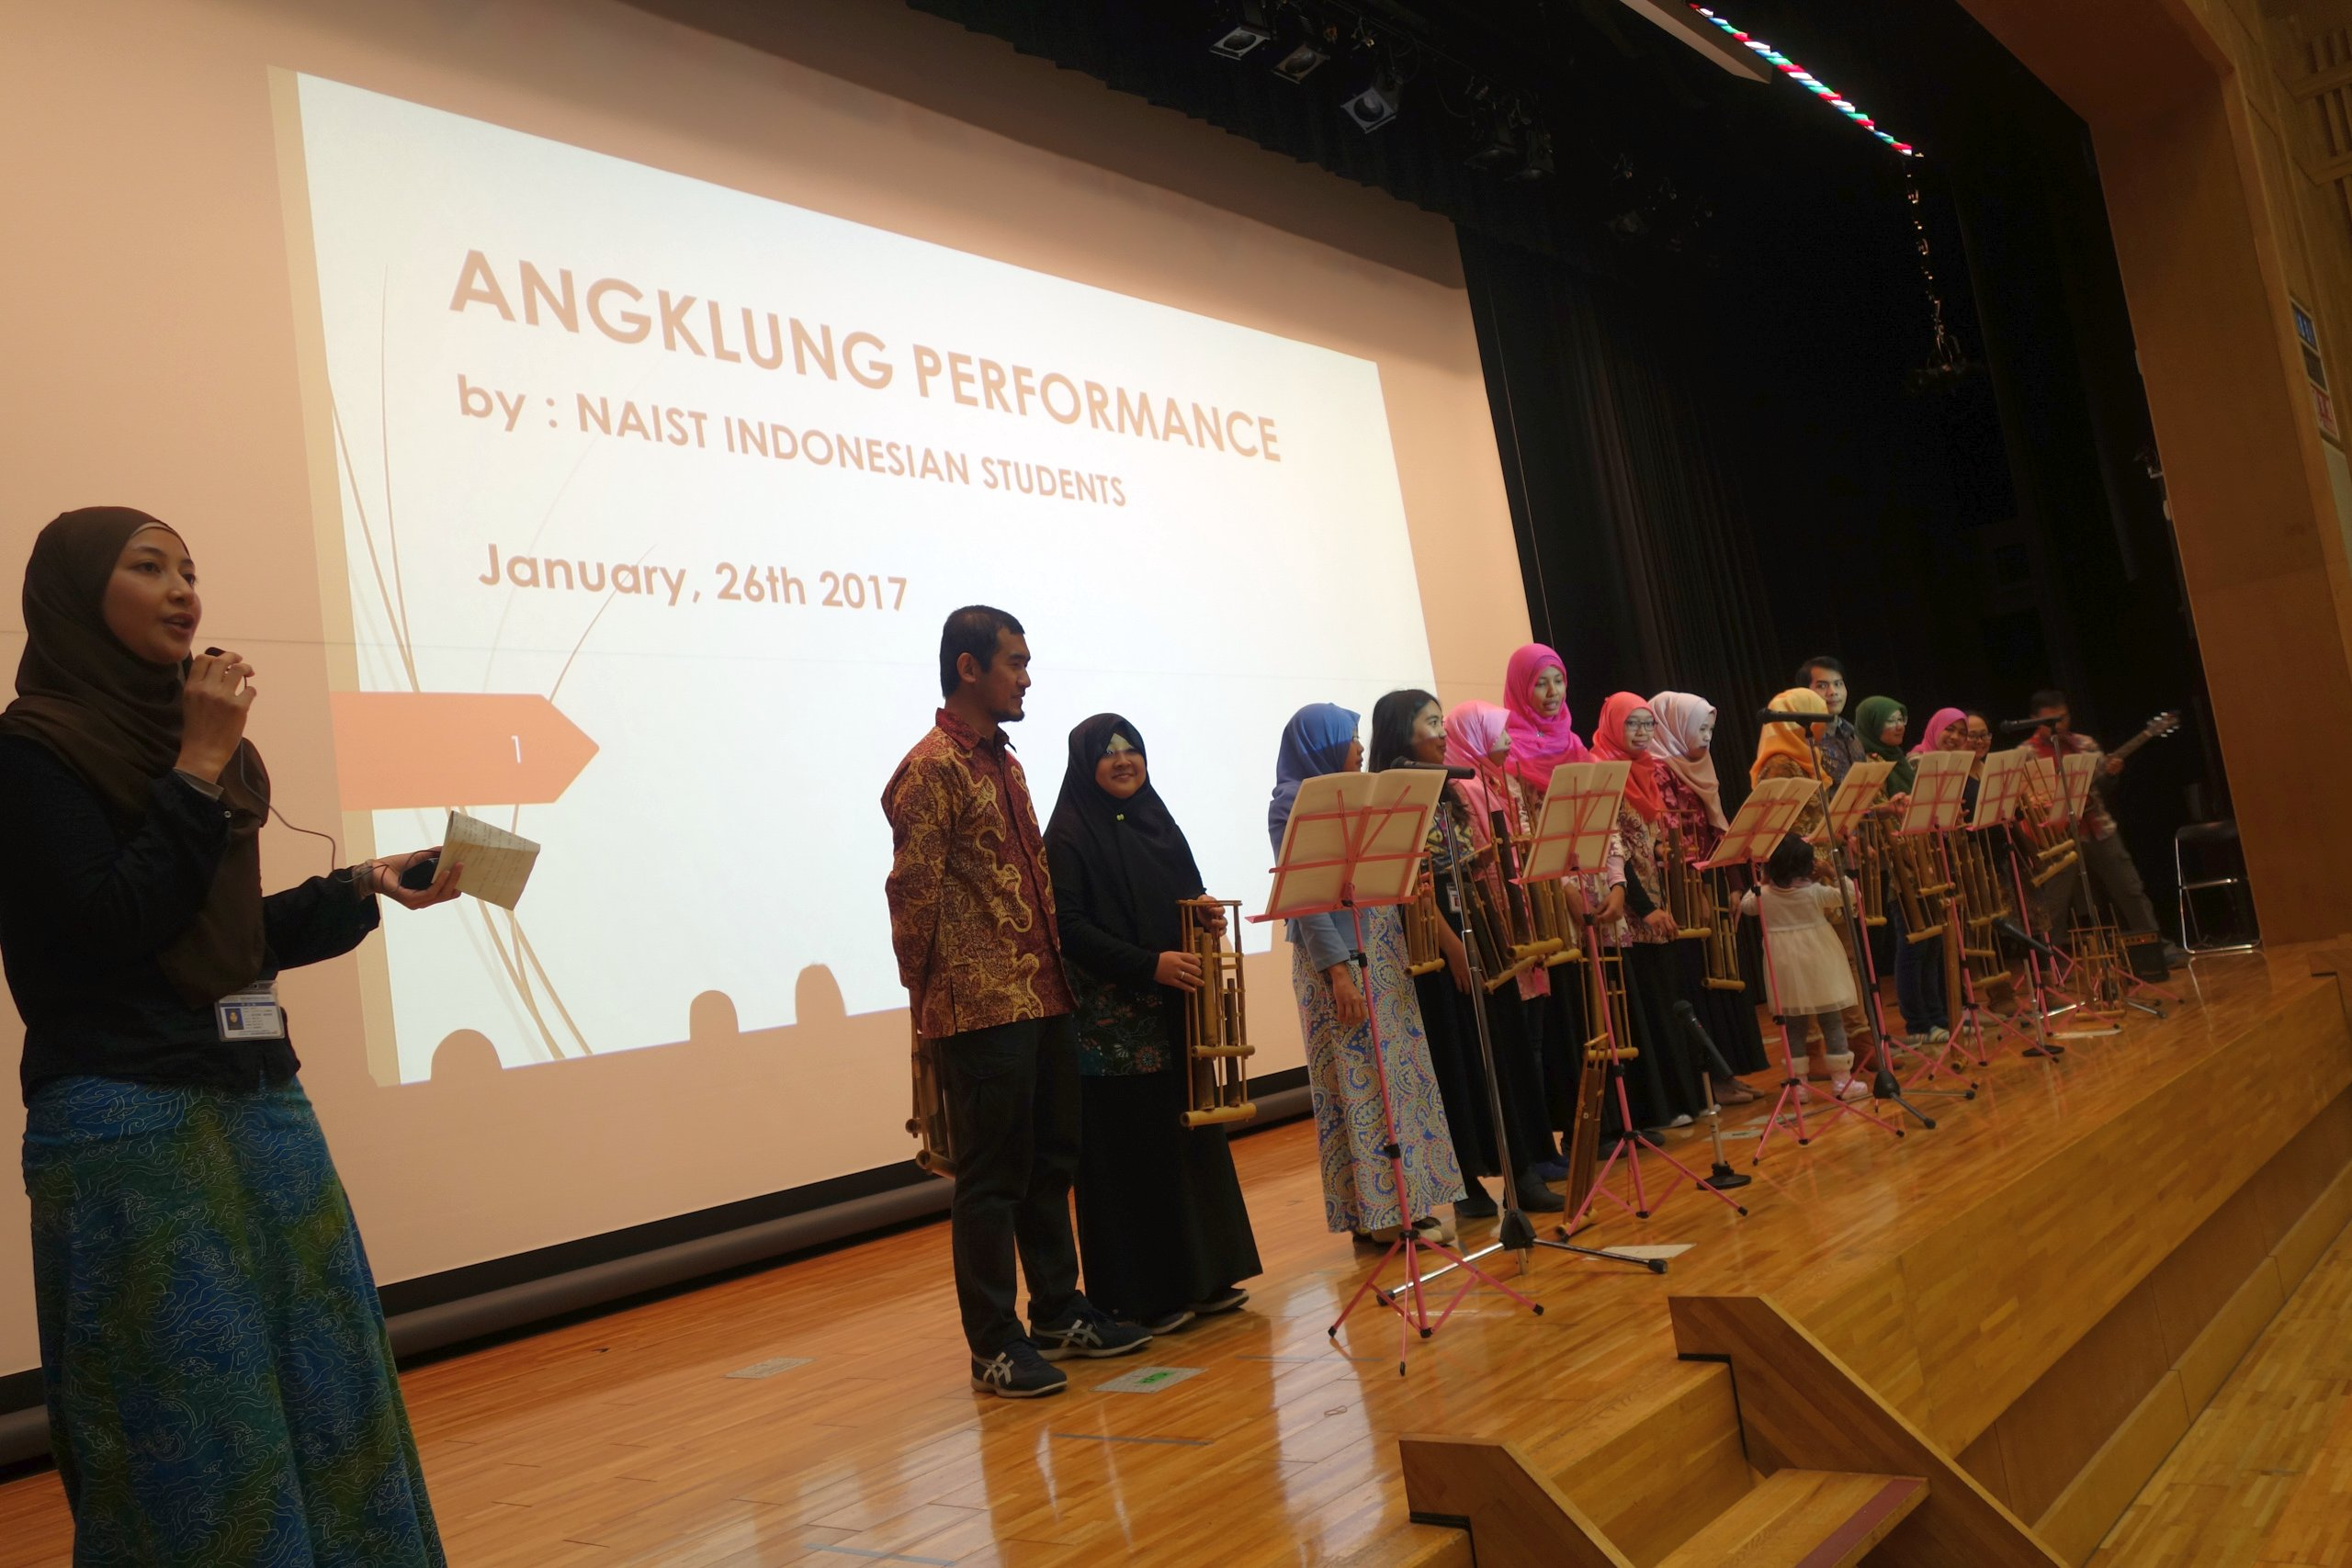 In Angklung, every instrument plays only one note and the band follows a melody by alternating players quickly.